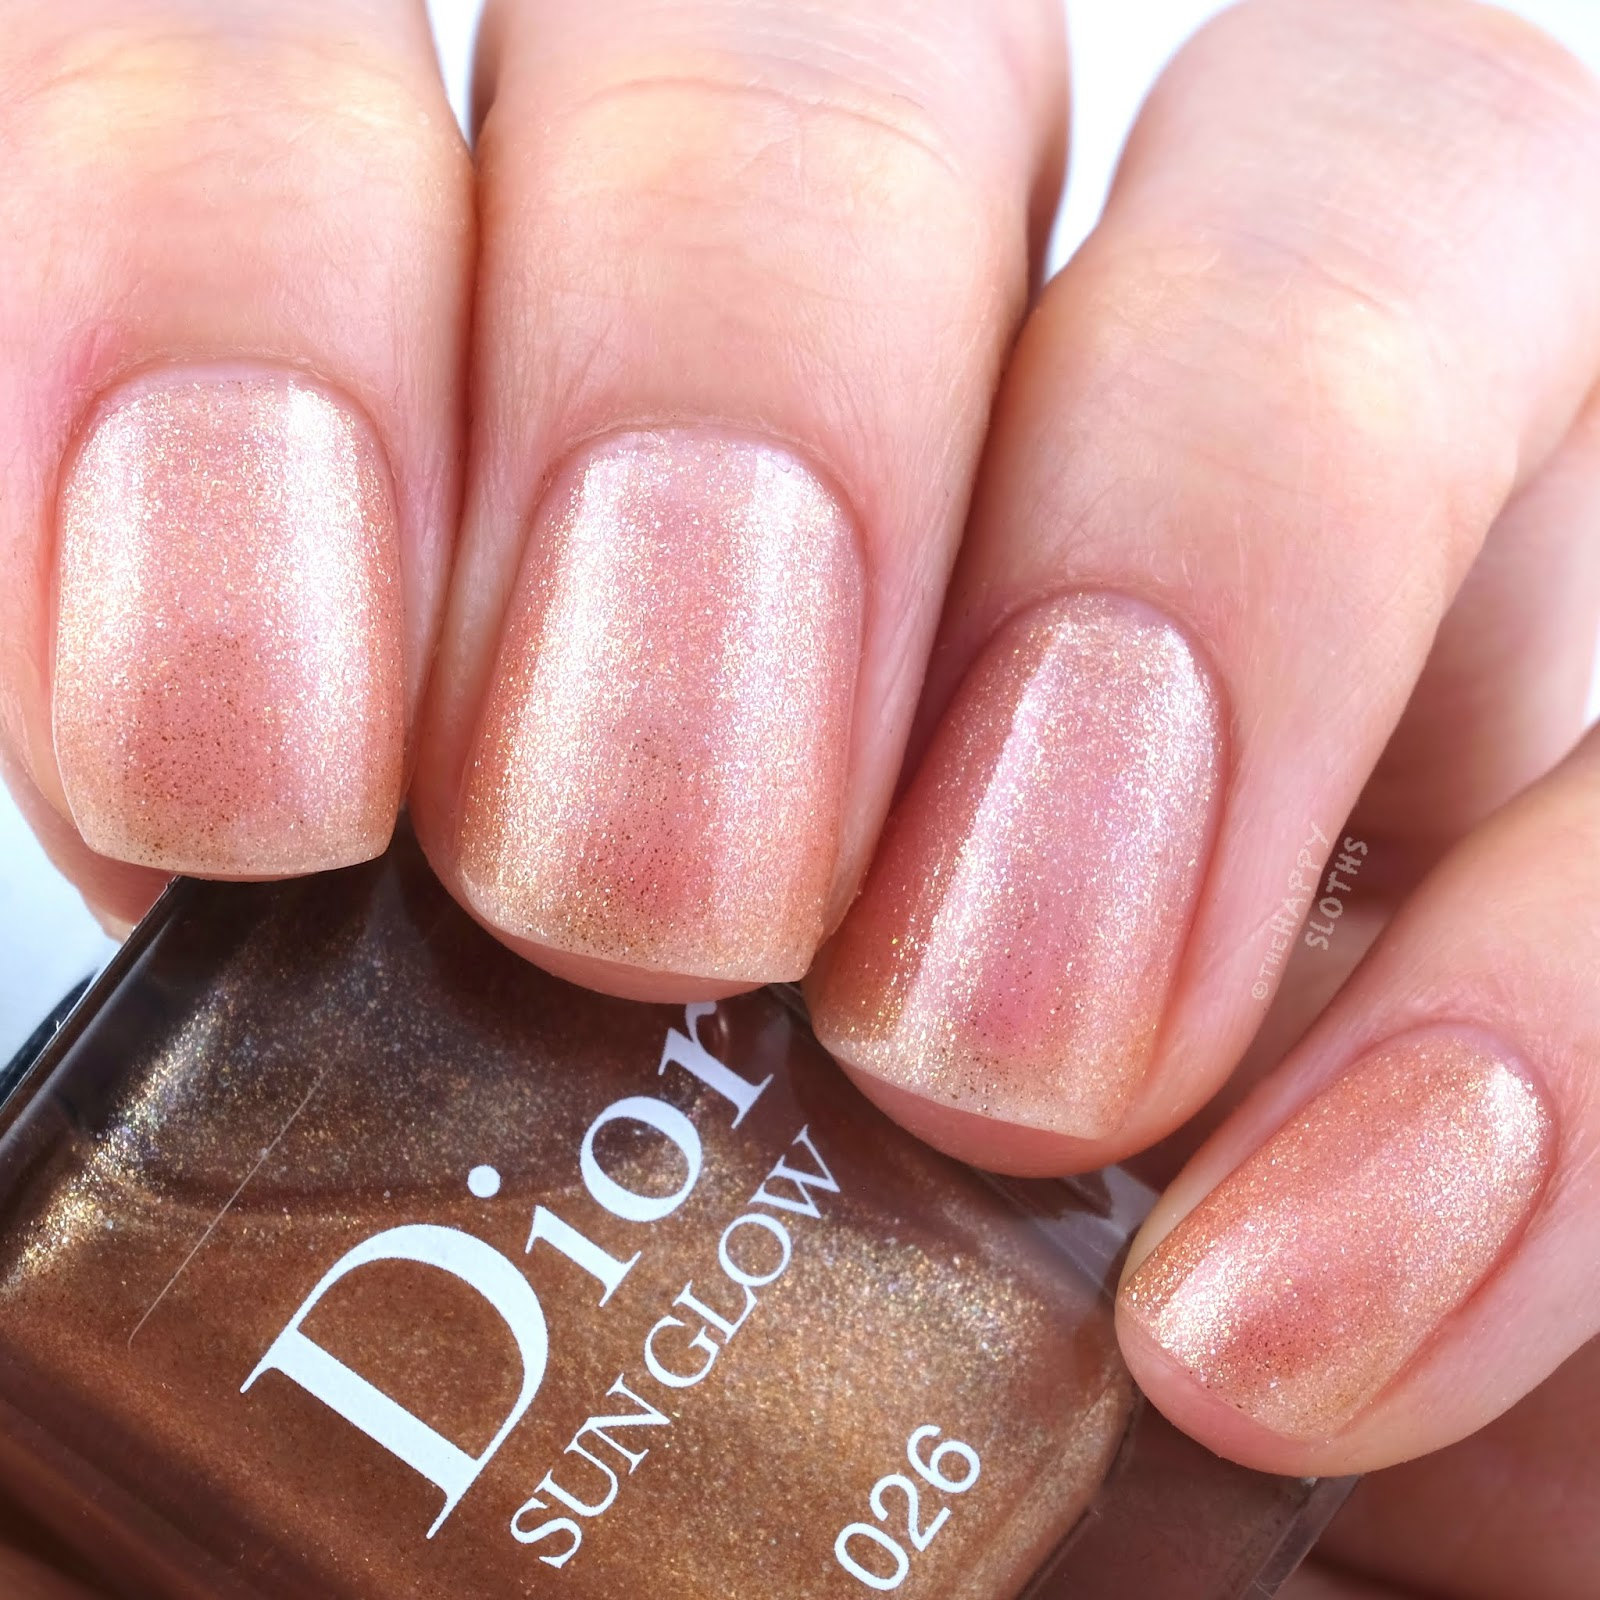 Dior Summer 2019 Wild Earth Collection | Sun Glow Veil of Light Nail Protection and Radiance: Review and Swatches